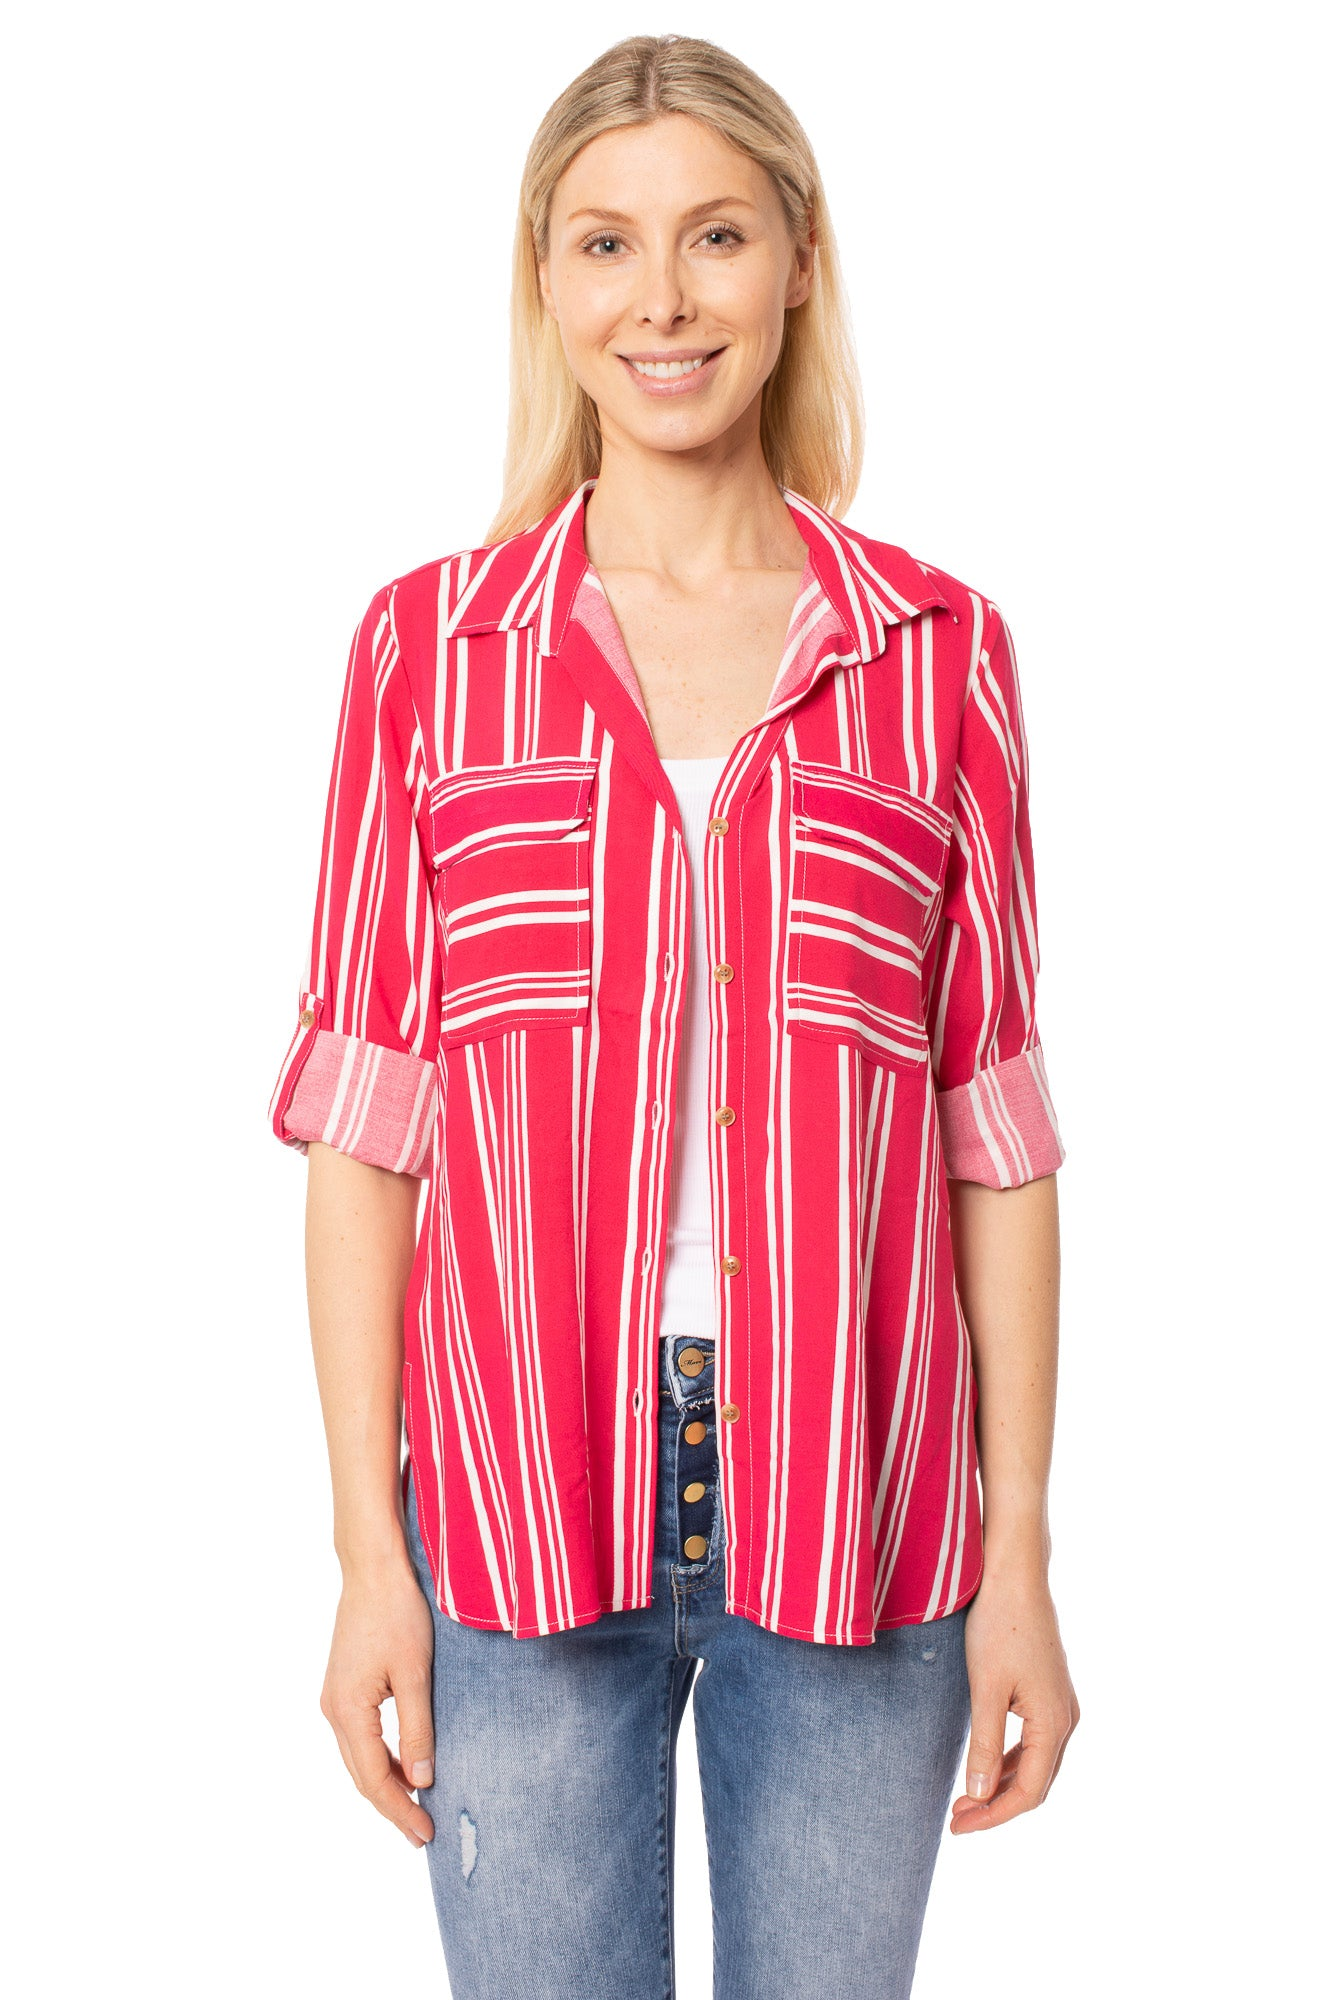 Velvet Heart - Idena Shirt (3RN-22725, Red & White)